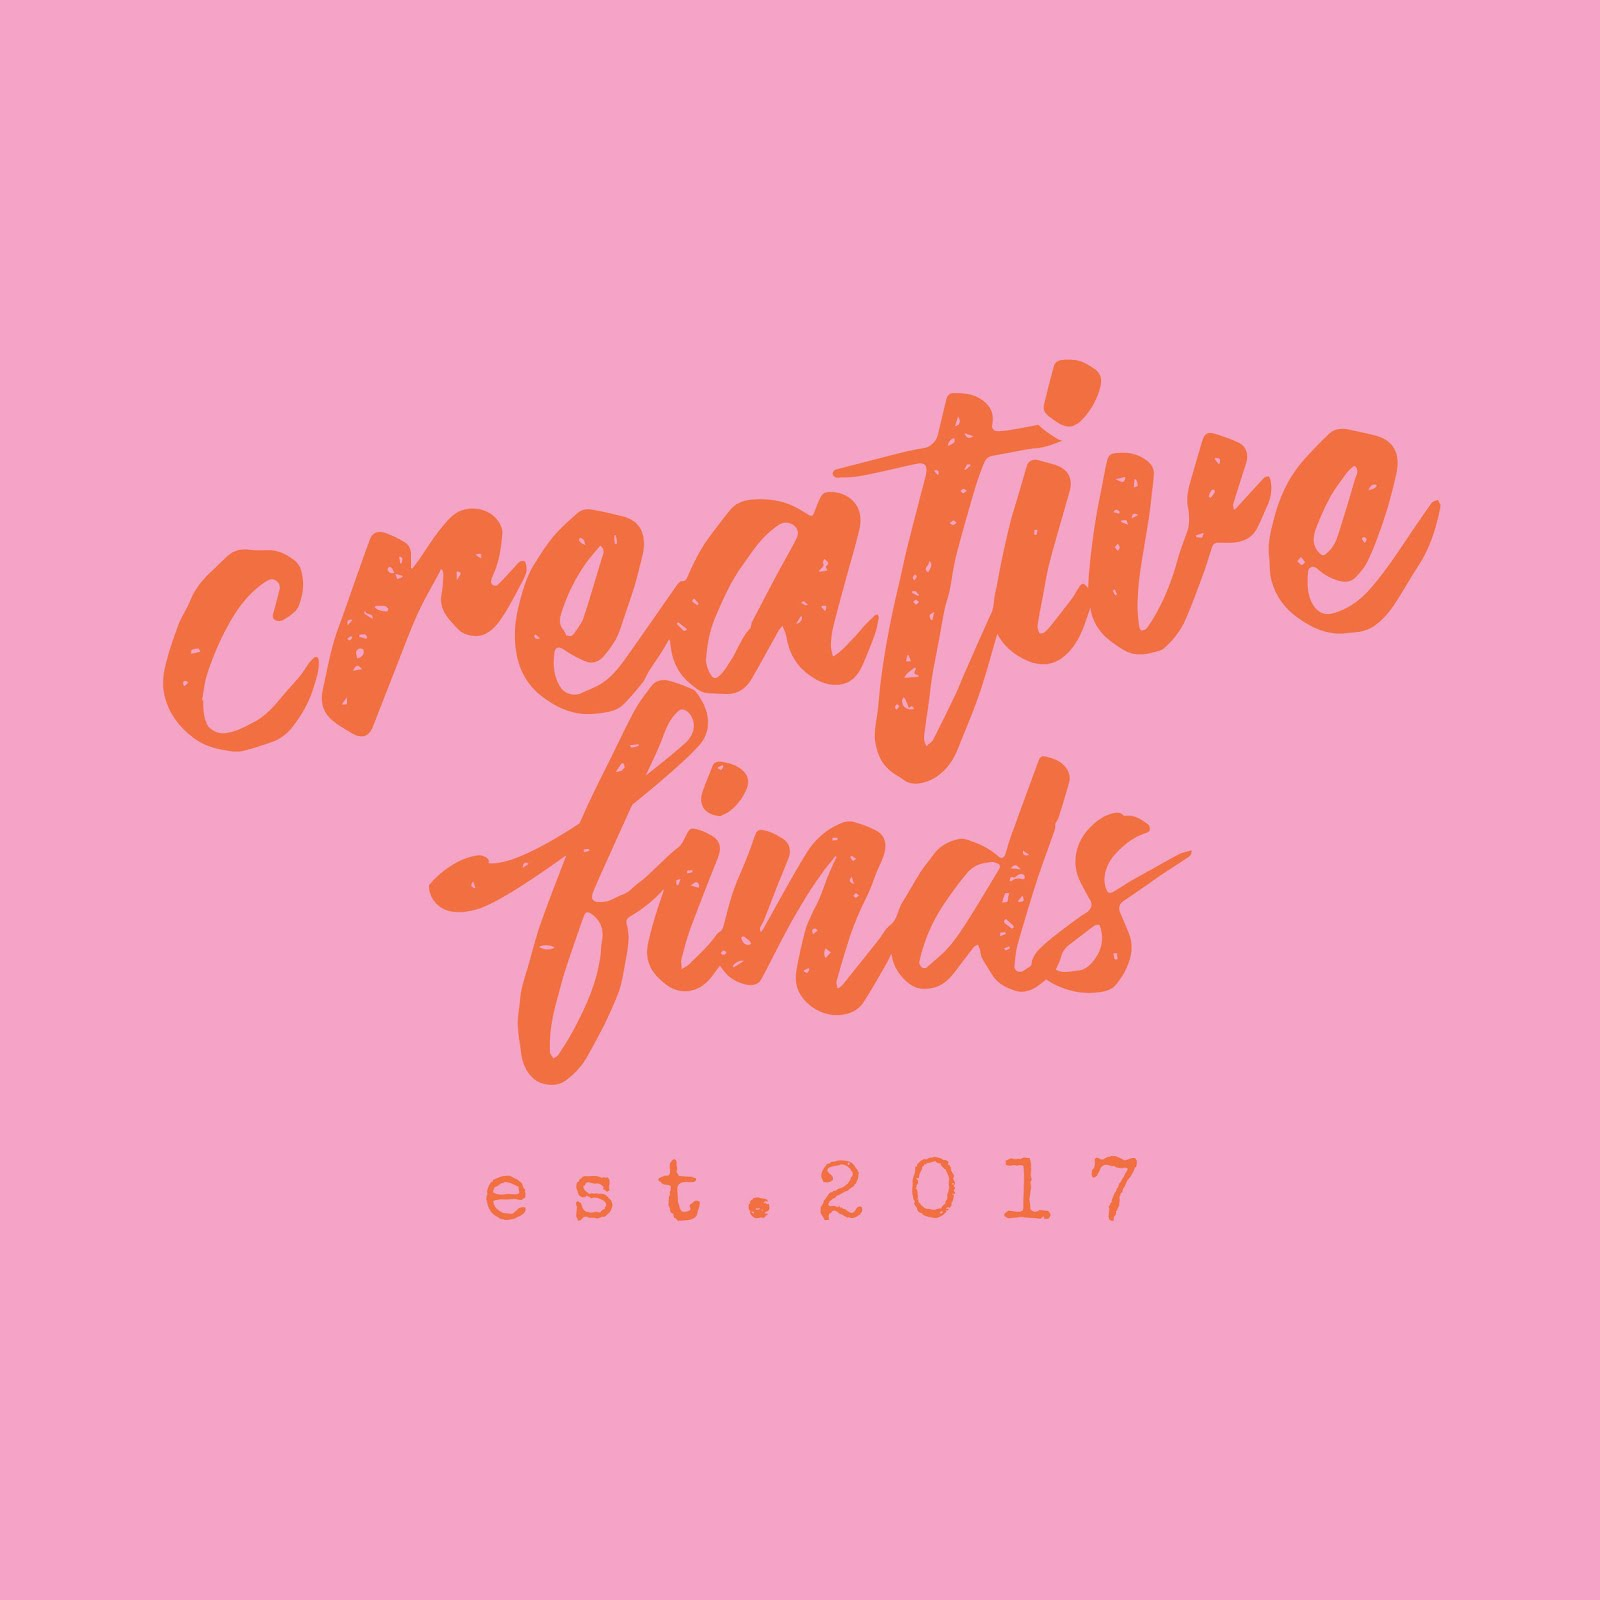 creative finds